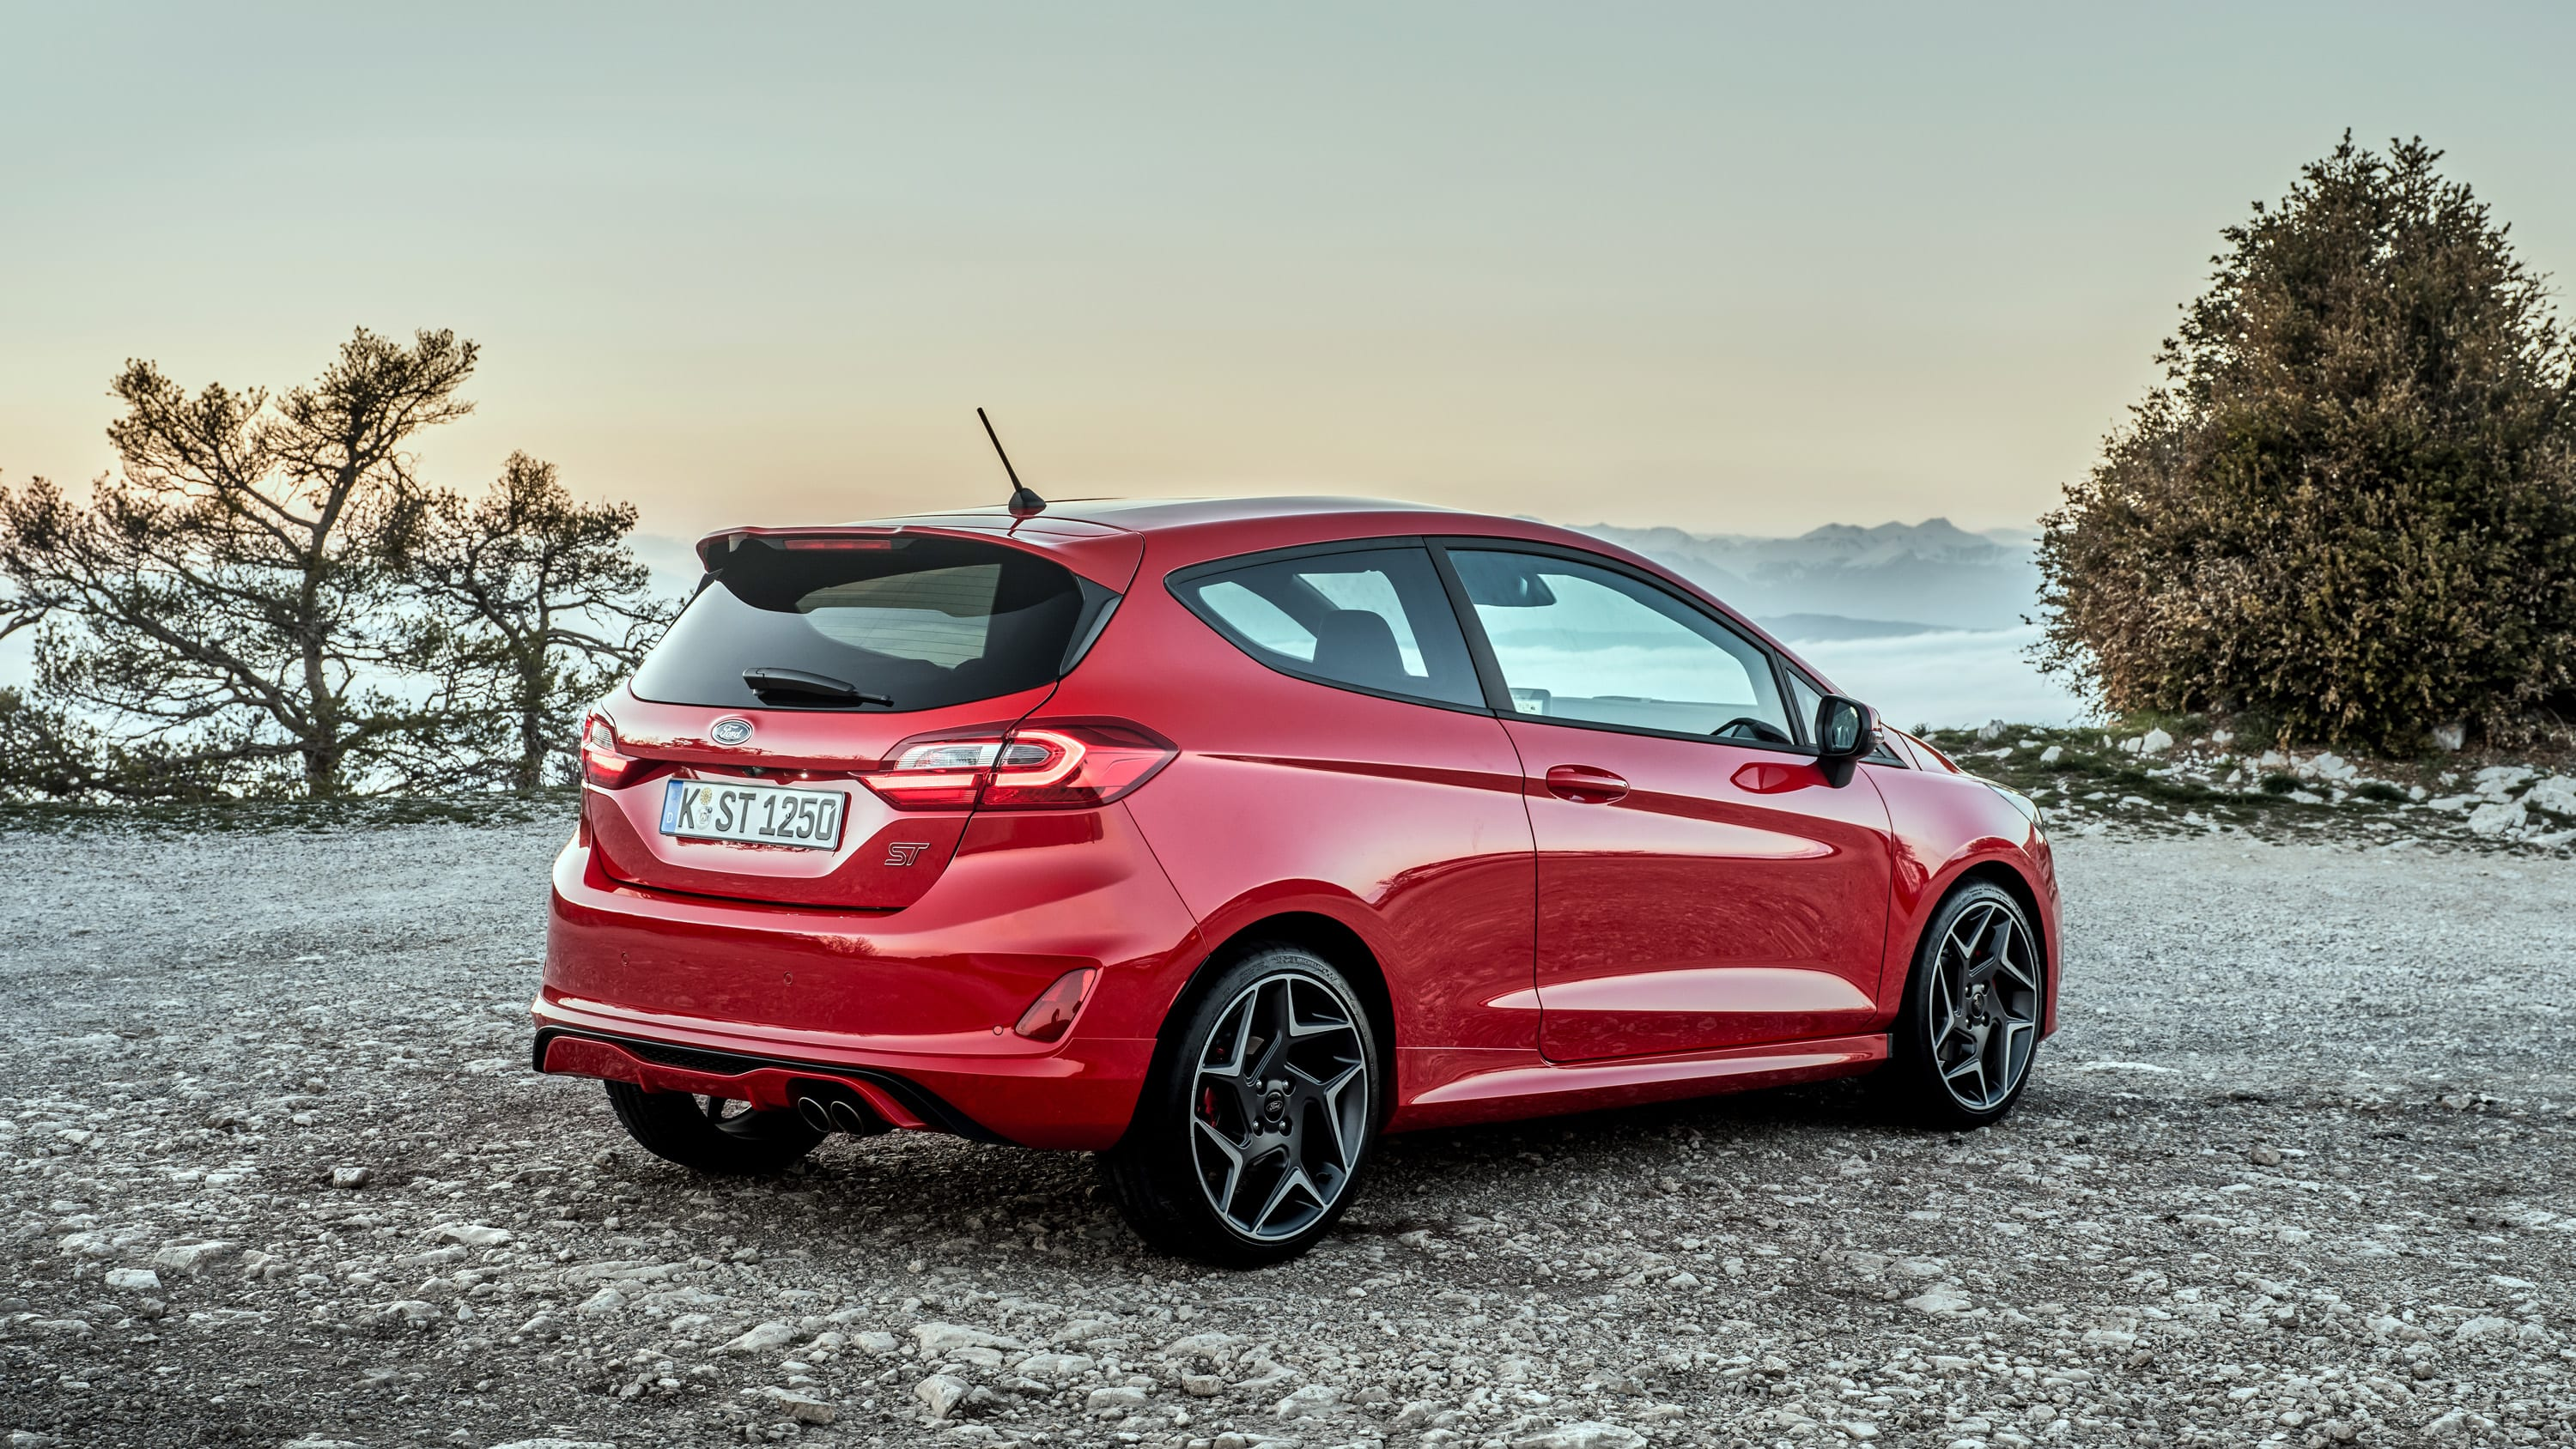 2019 Ford Fiesta ST review 21